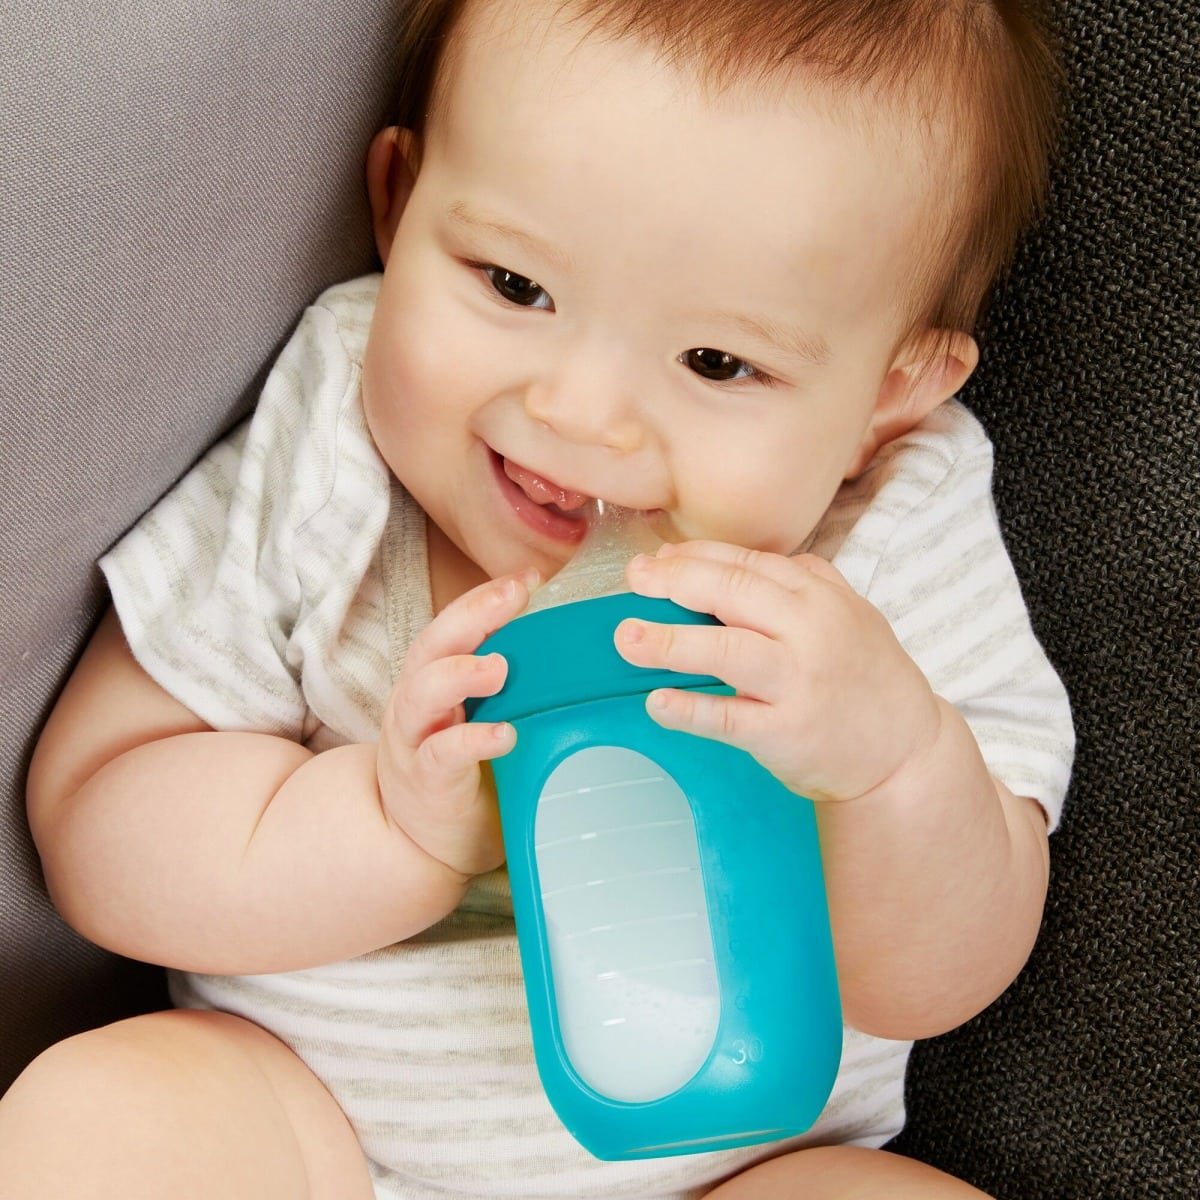 db2c5d6d7b5df Nursh The Best Baby Bottles From Boon » Daily Mom